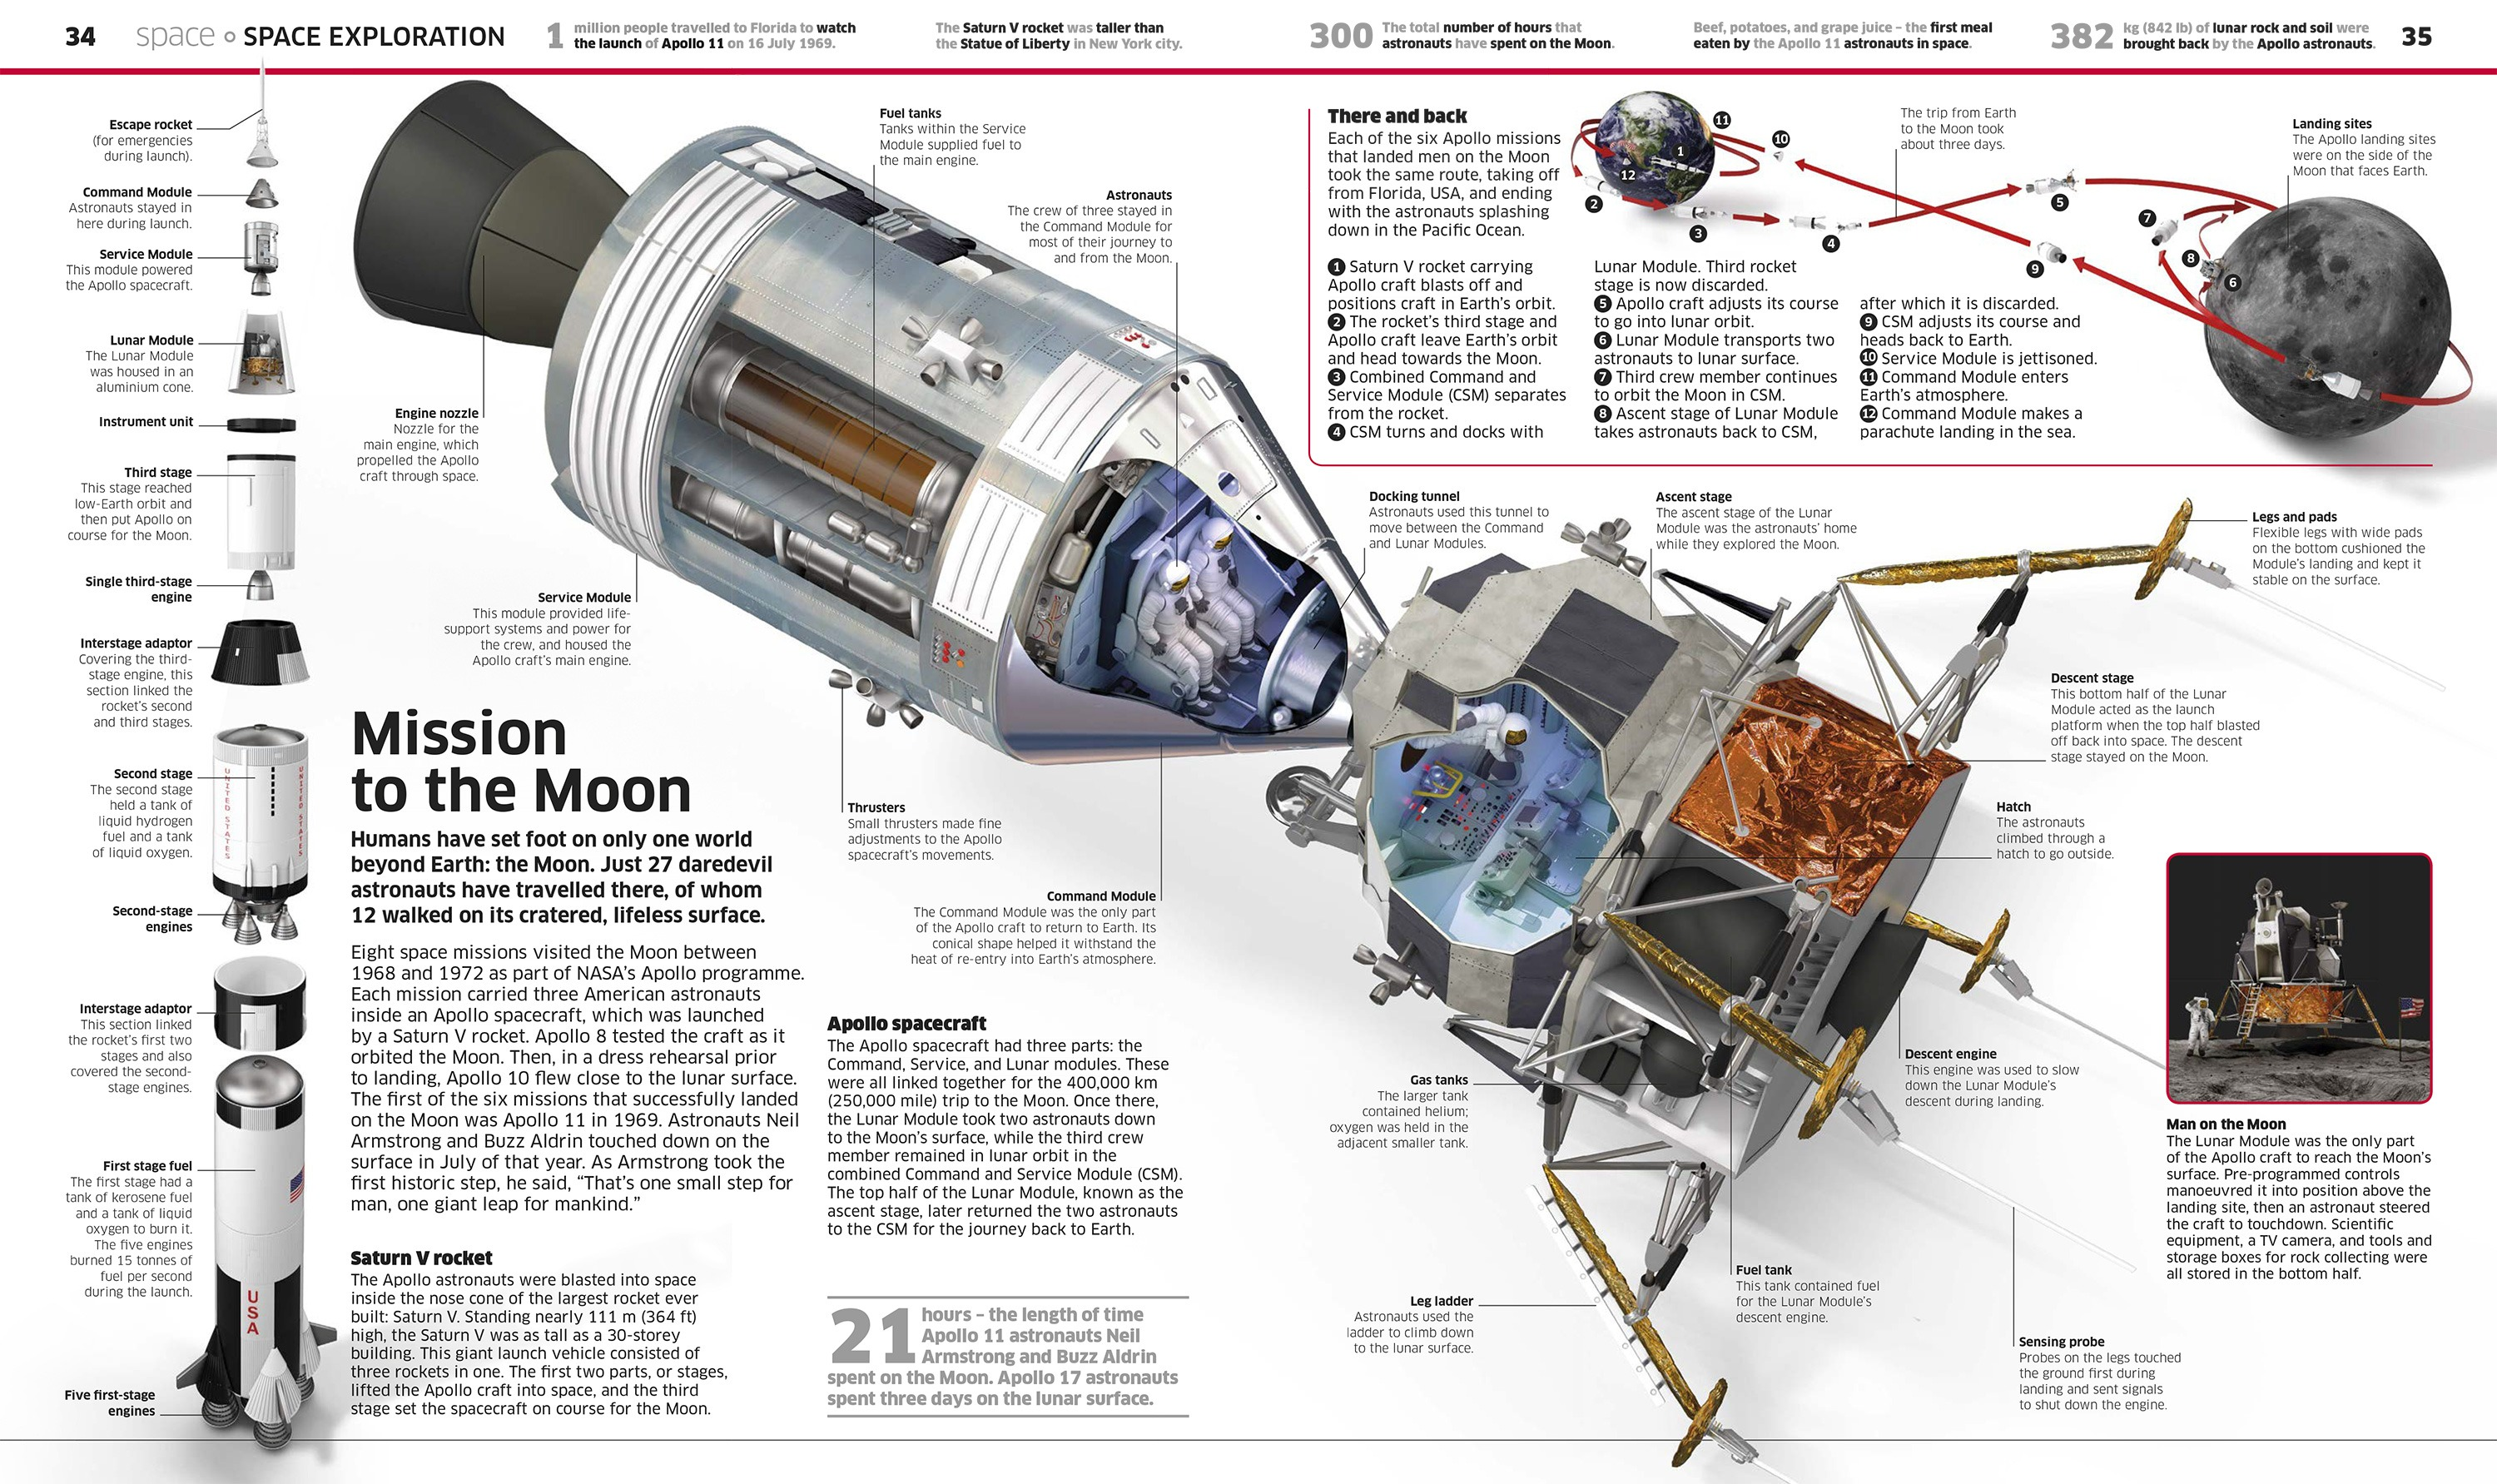 stas3dart-dorling-kindersley-knowledge-encyclopedia-illustration-apollo11